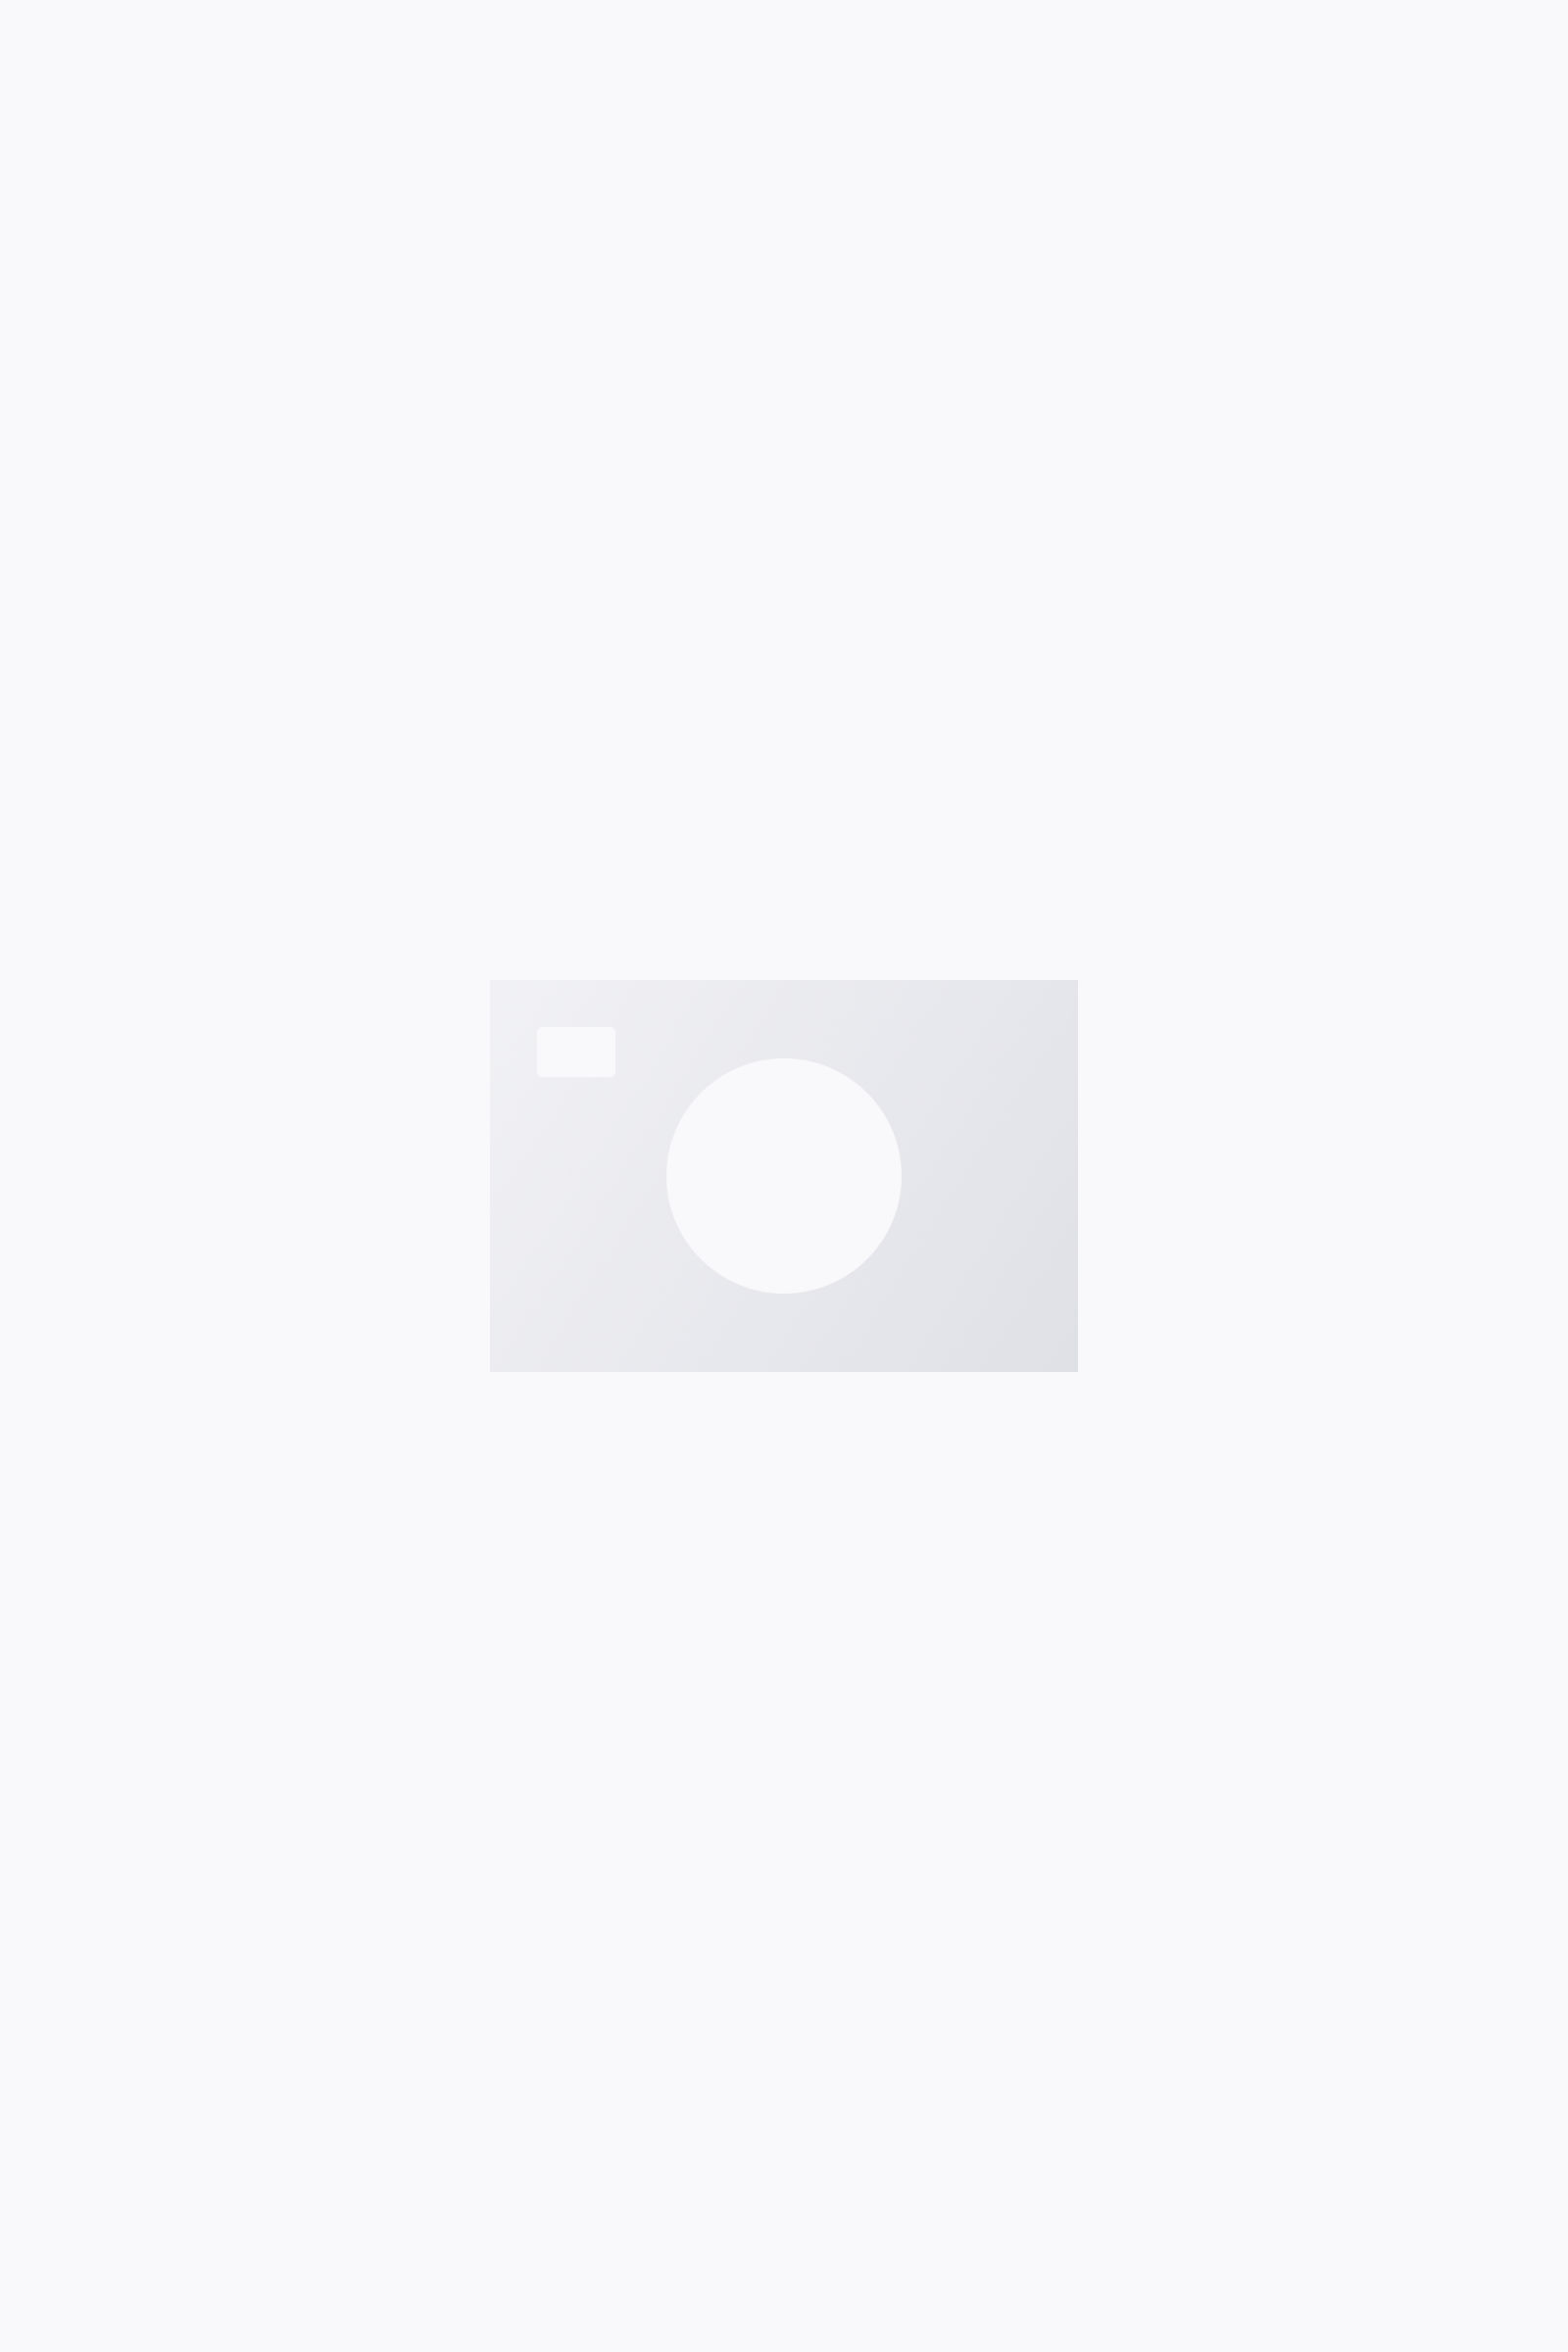 COS SLEEVELESS WIDE-LEG JUMPSUIT,white